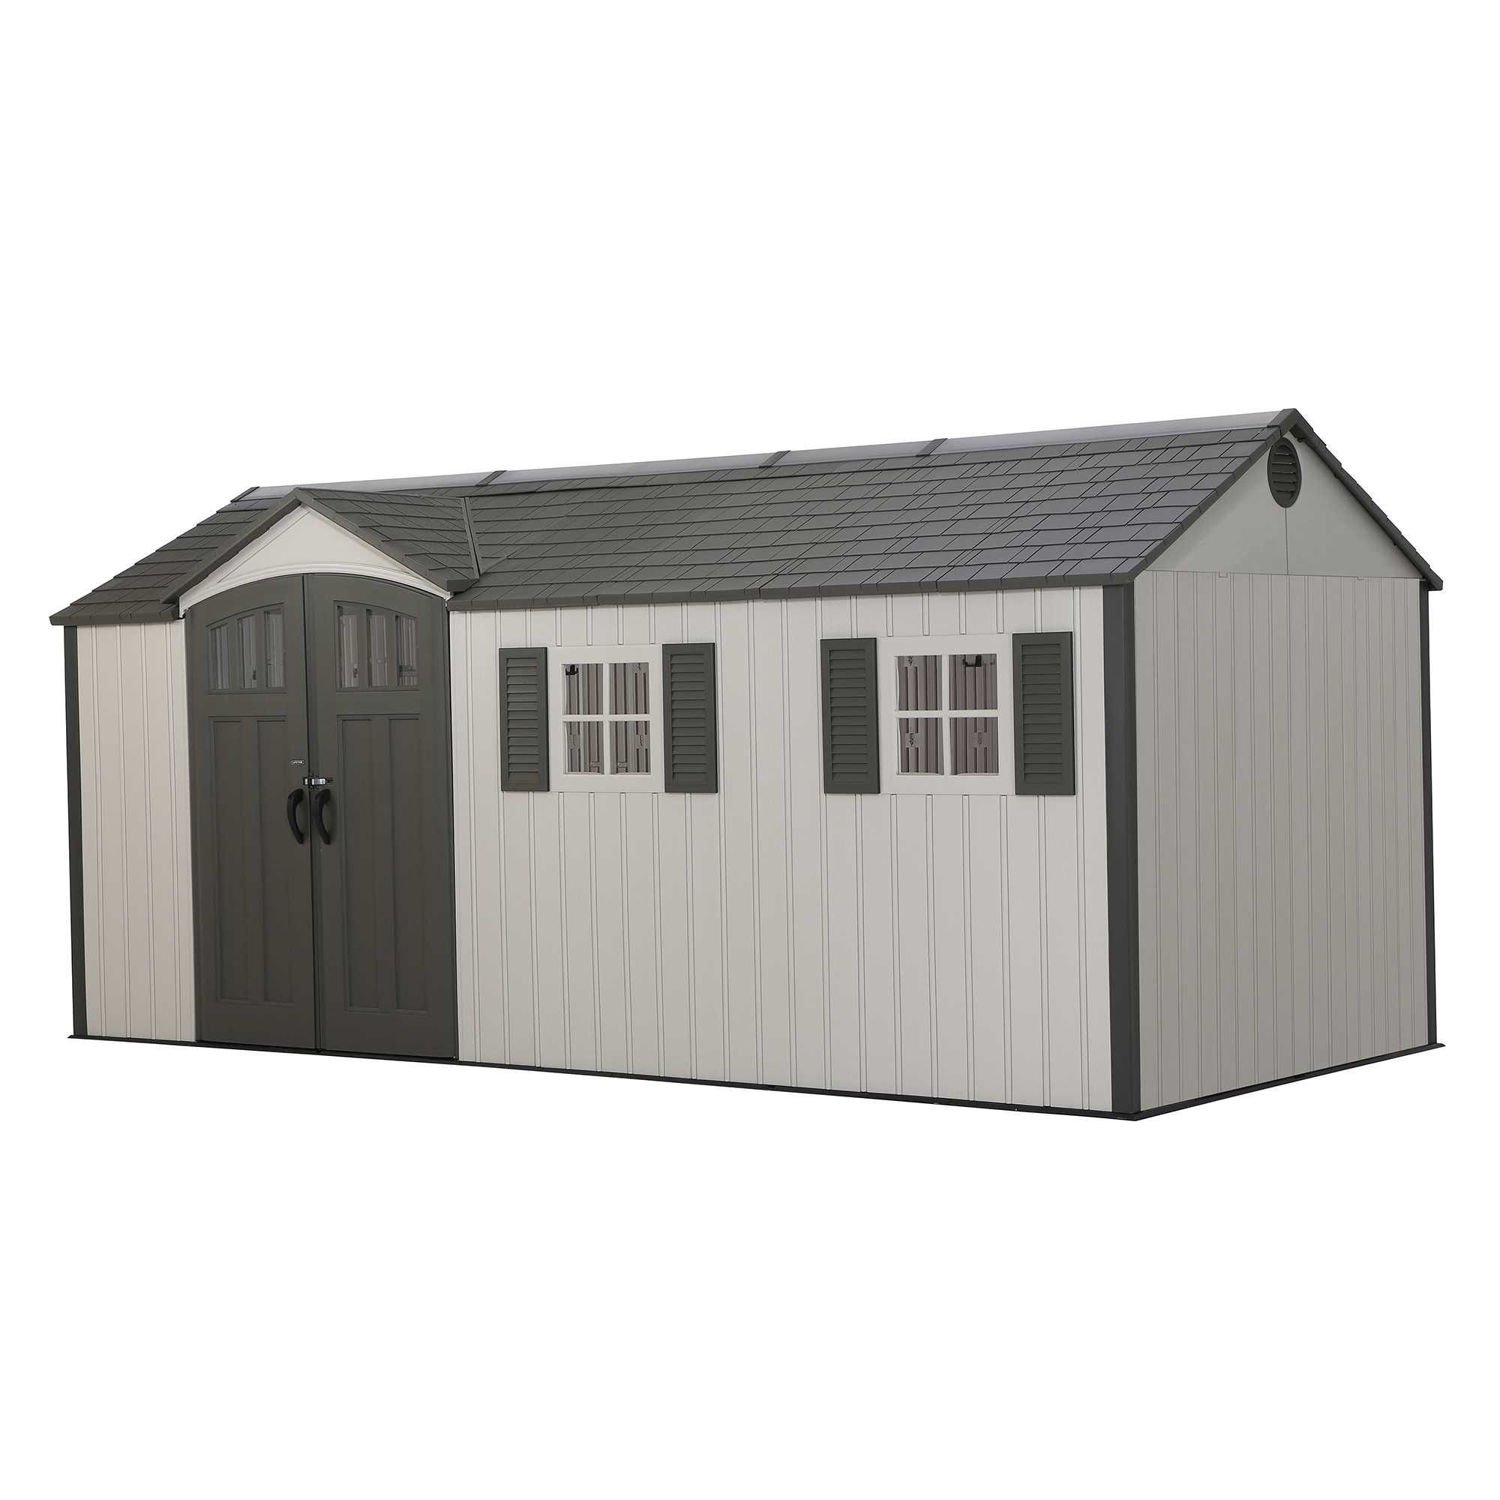 Lifetime 17 5x8 Plastic Shed Greenhouse Stores